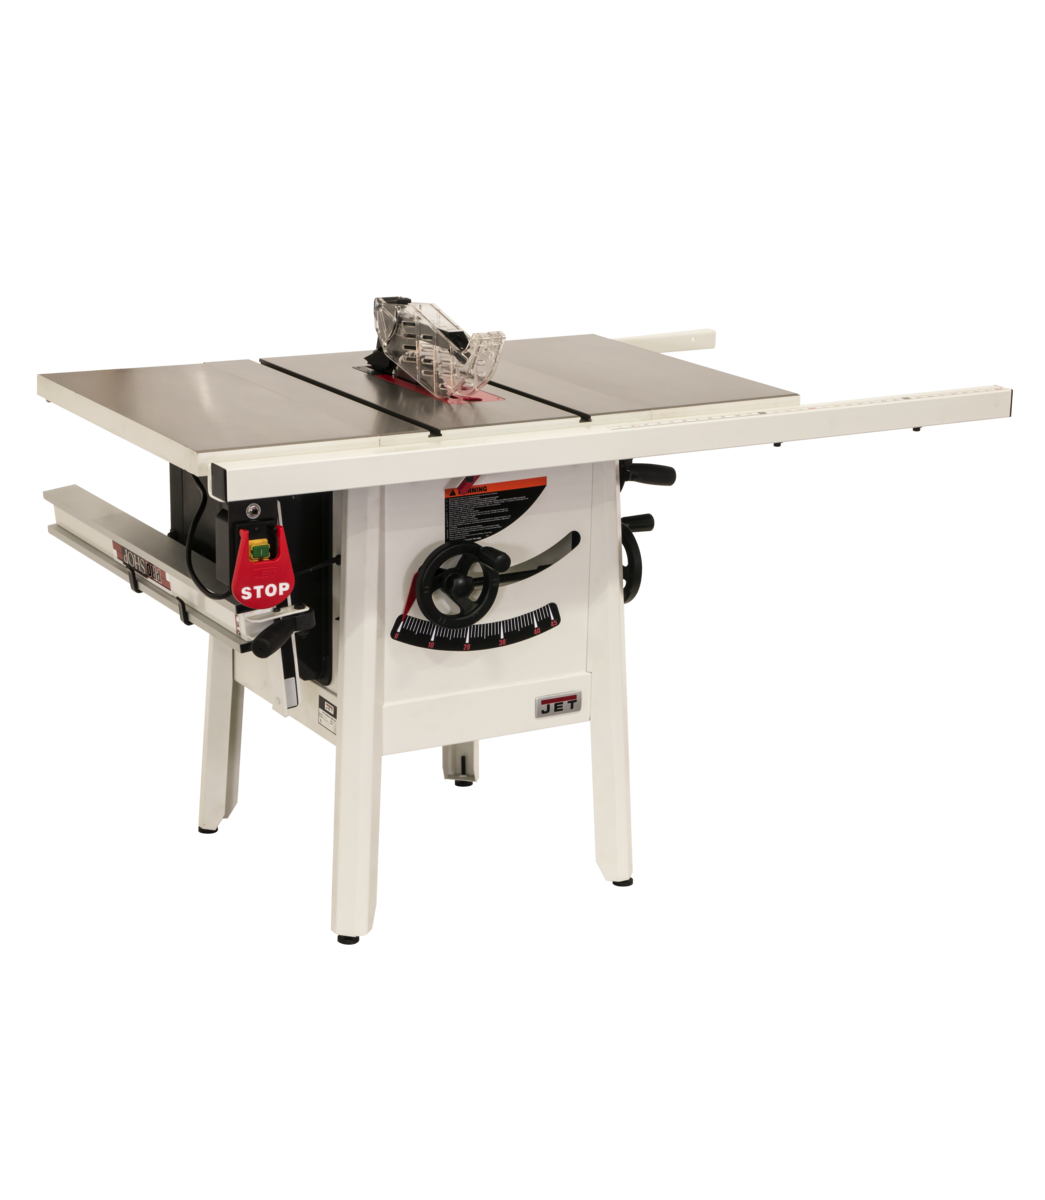 """The JPS-10 1.75 HP 115V 30"""" Proshop Tablesaw Cast wings"""